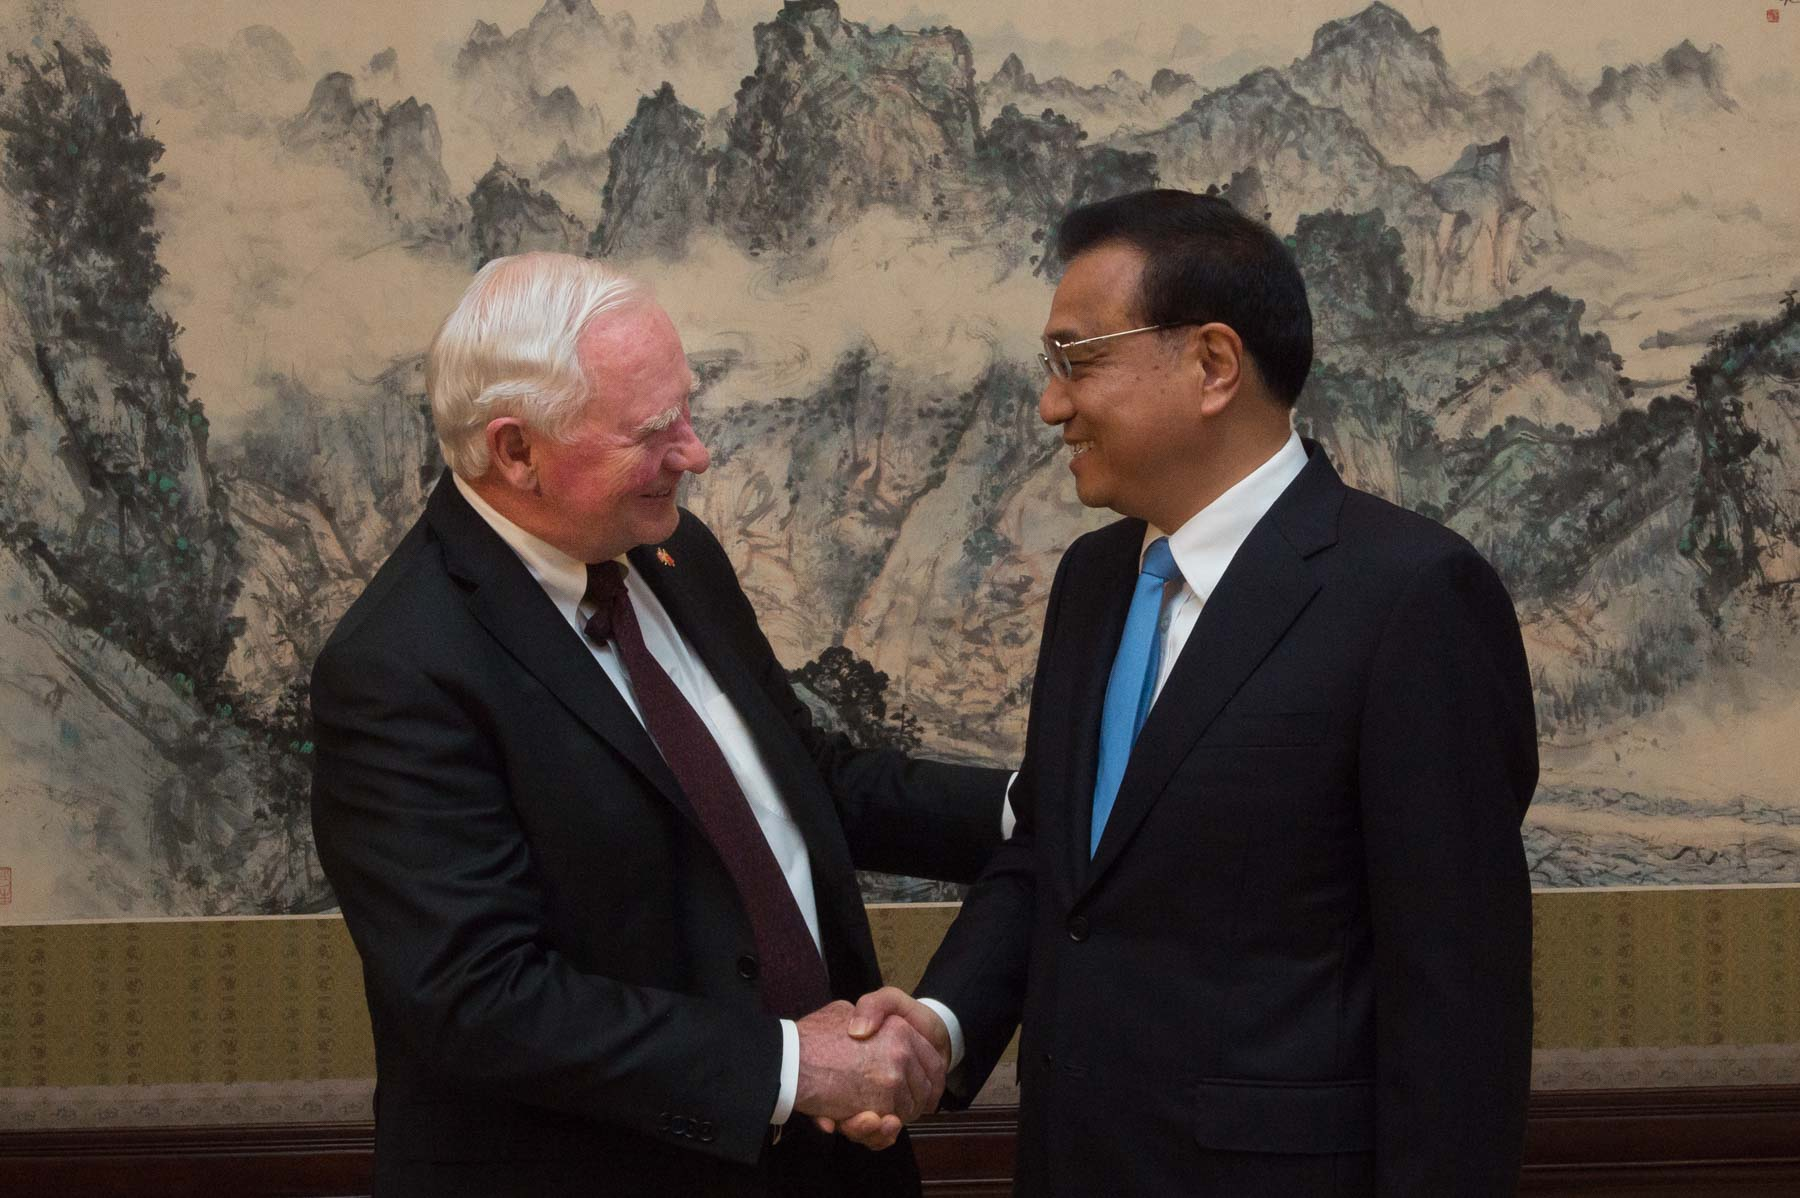 In the afternoon, the Governor General met with Premier Li Keqiang to streghten Canada-China relations.